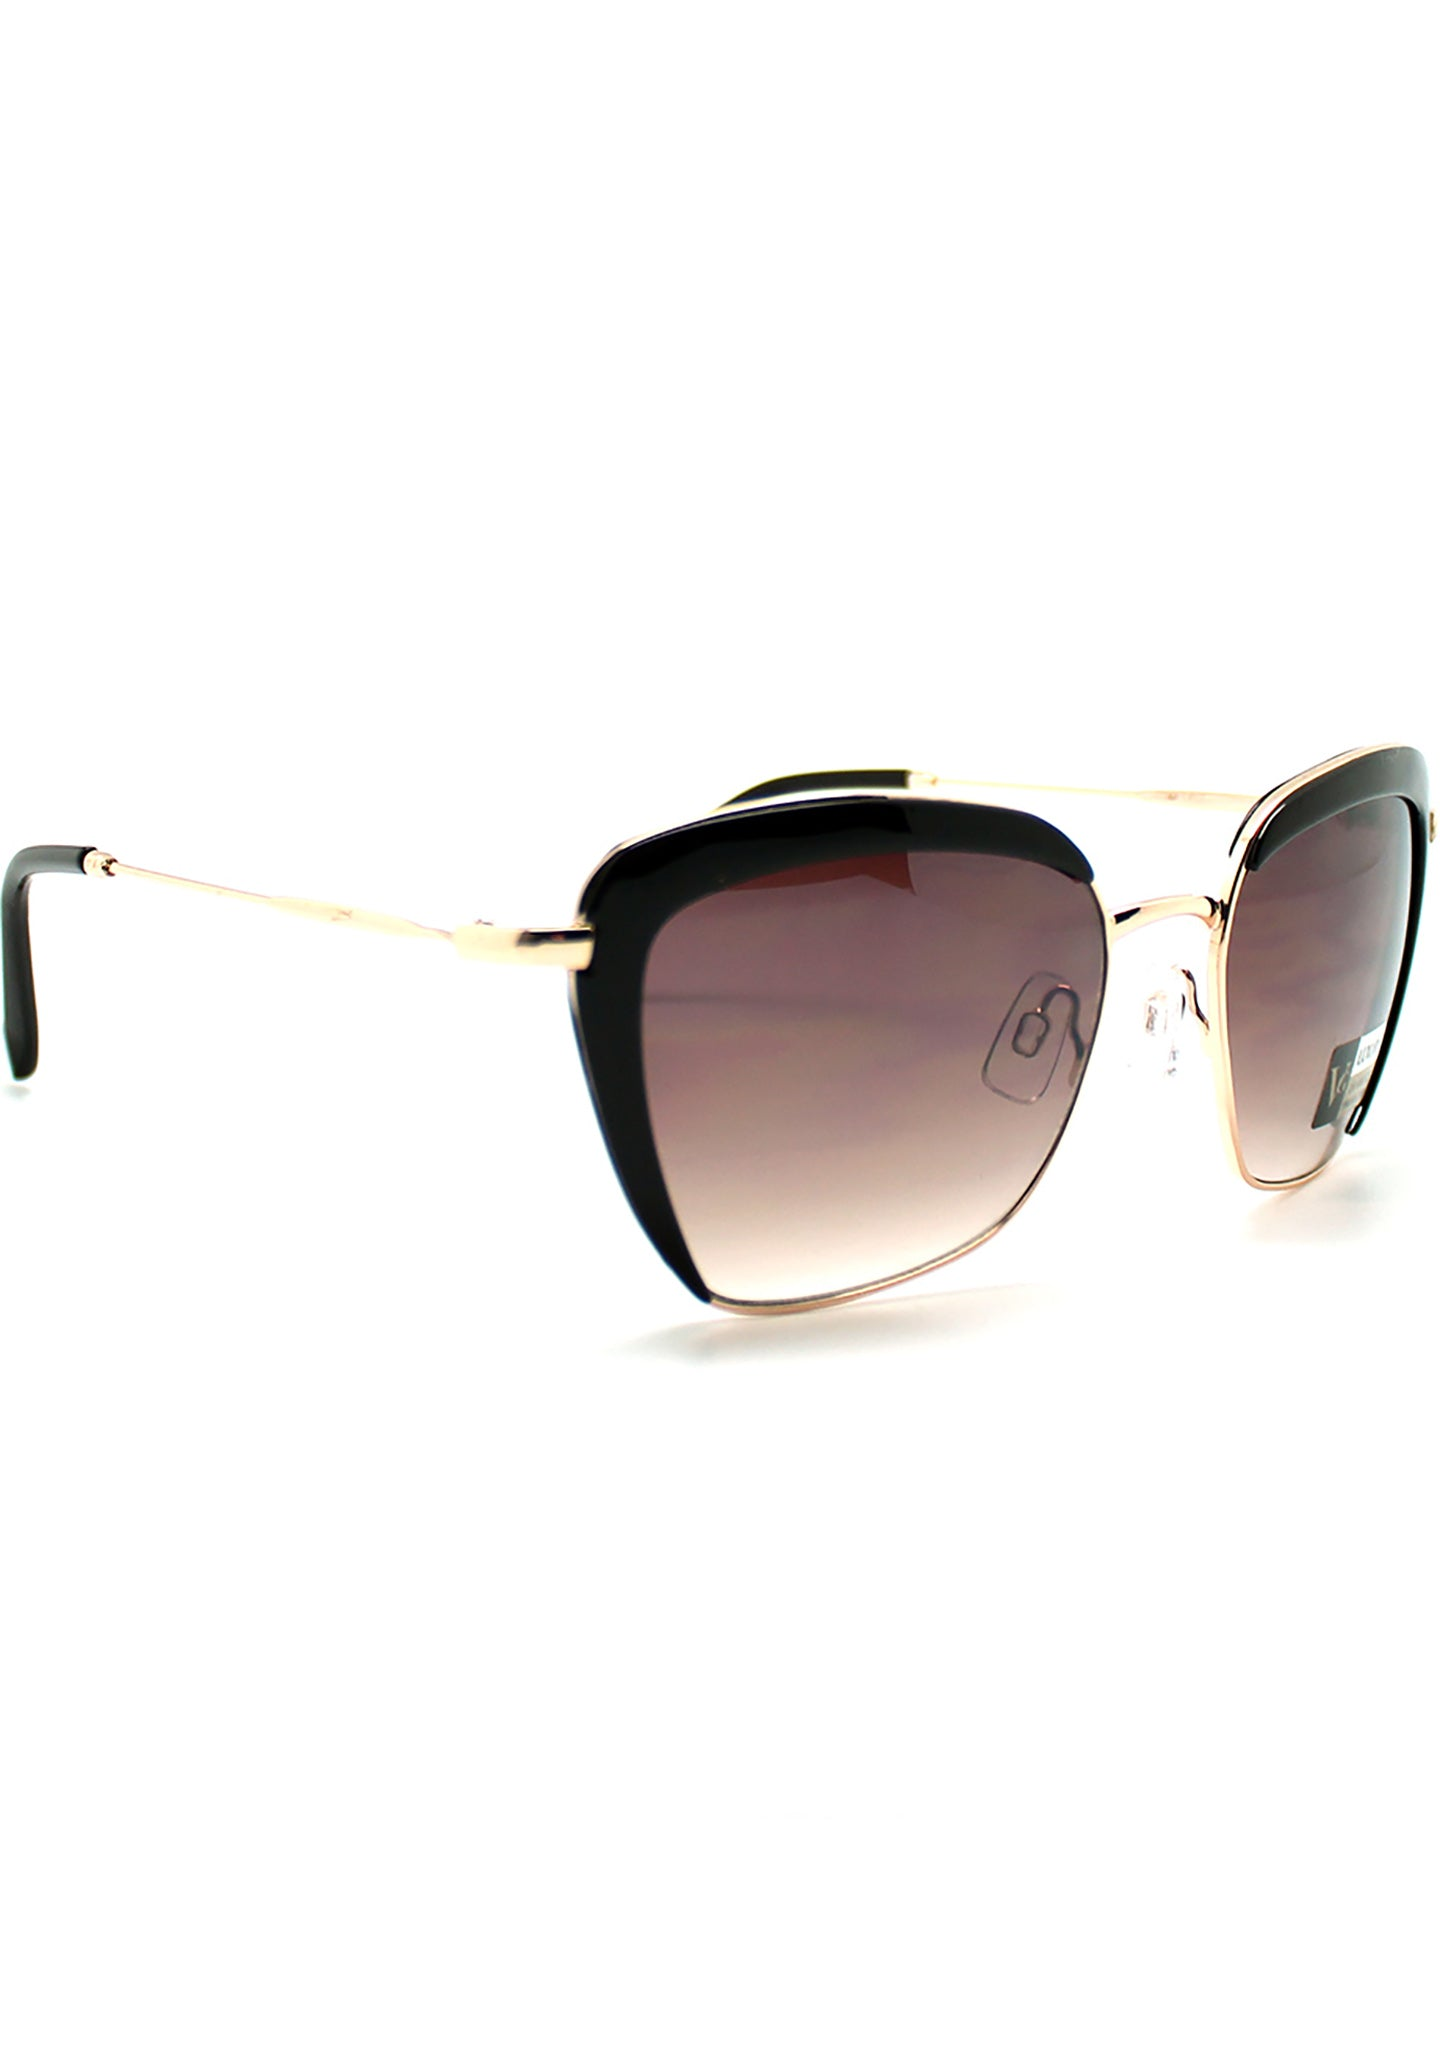 7 LUXE Lady M Sunglasses